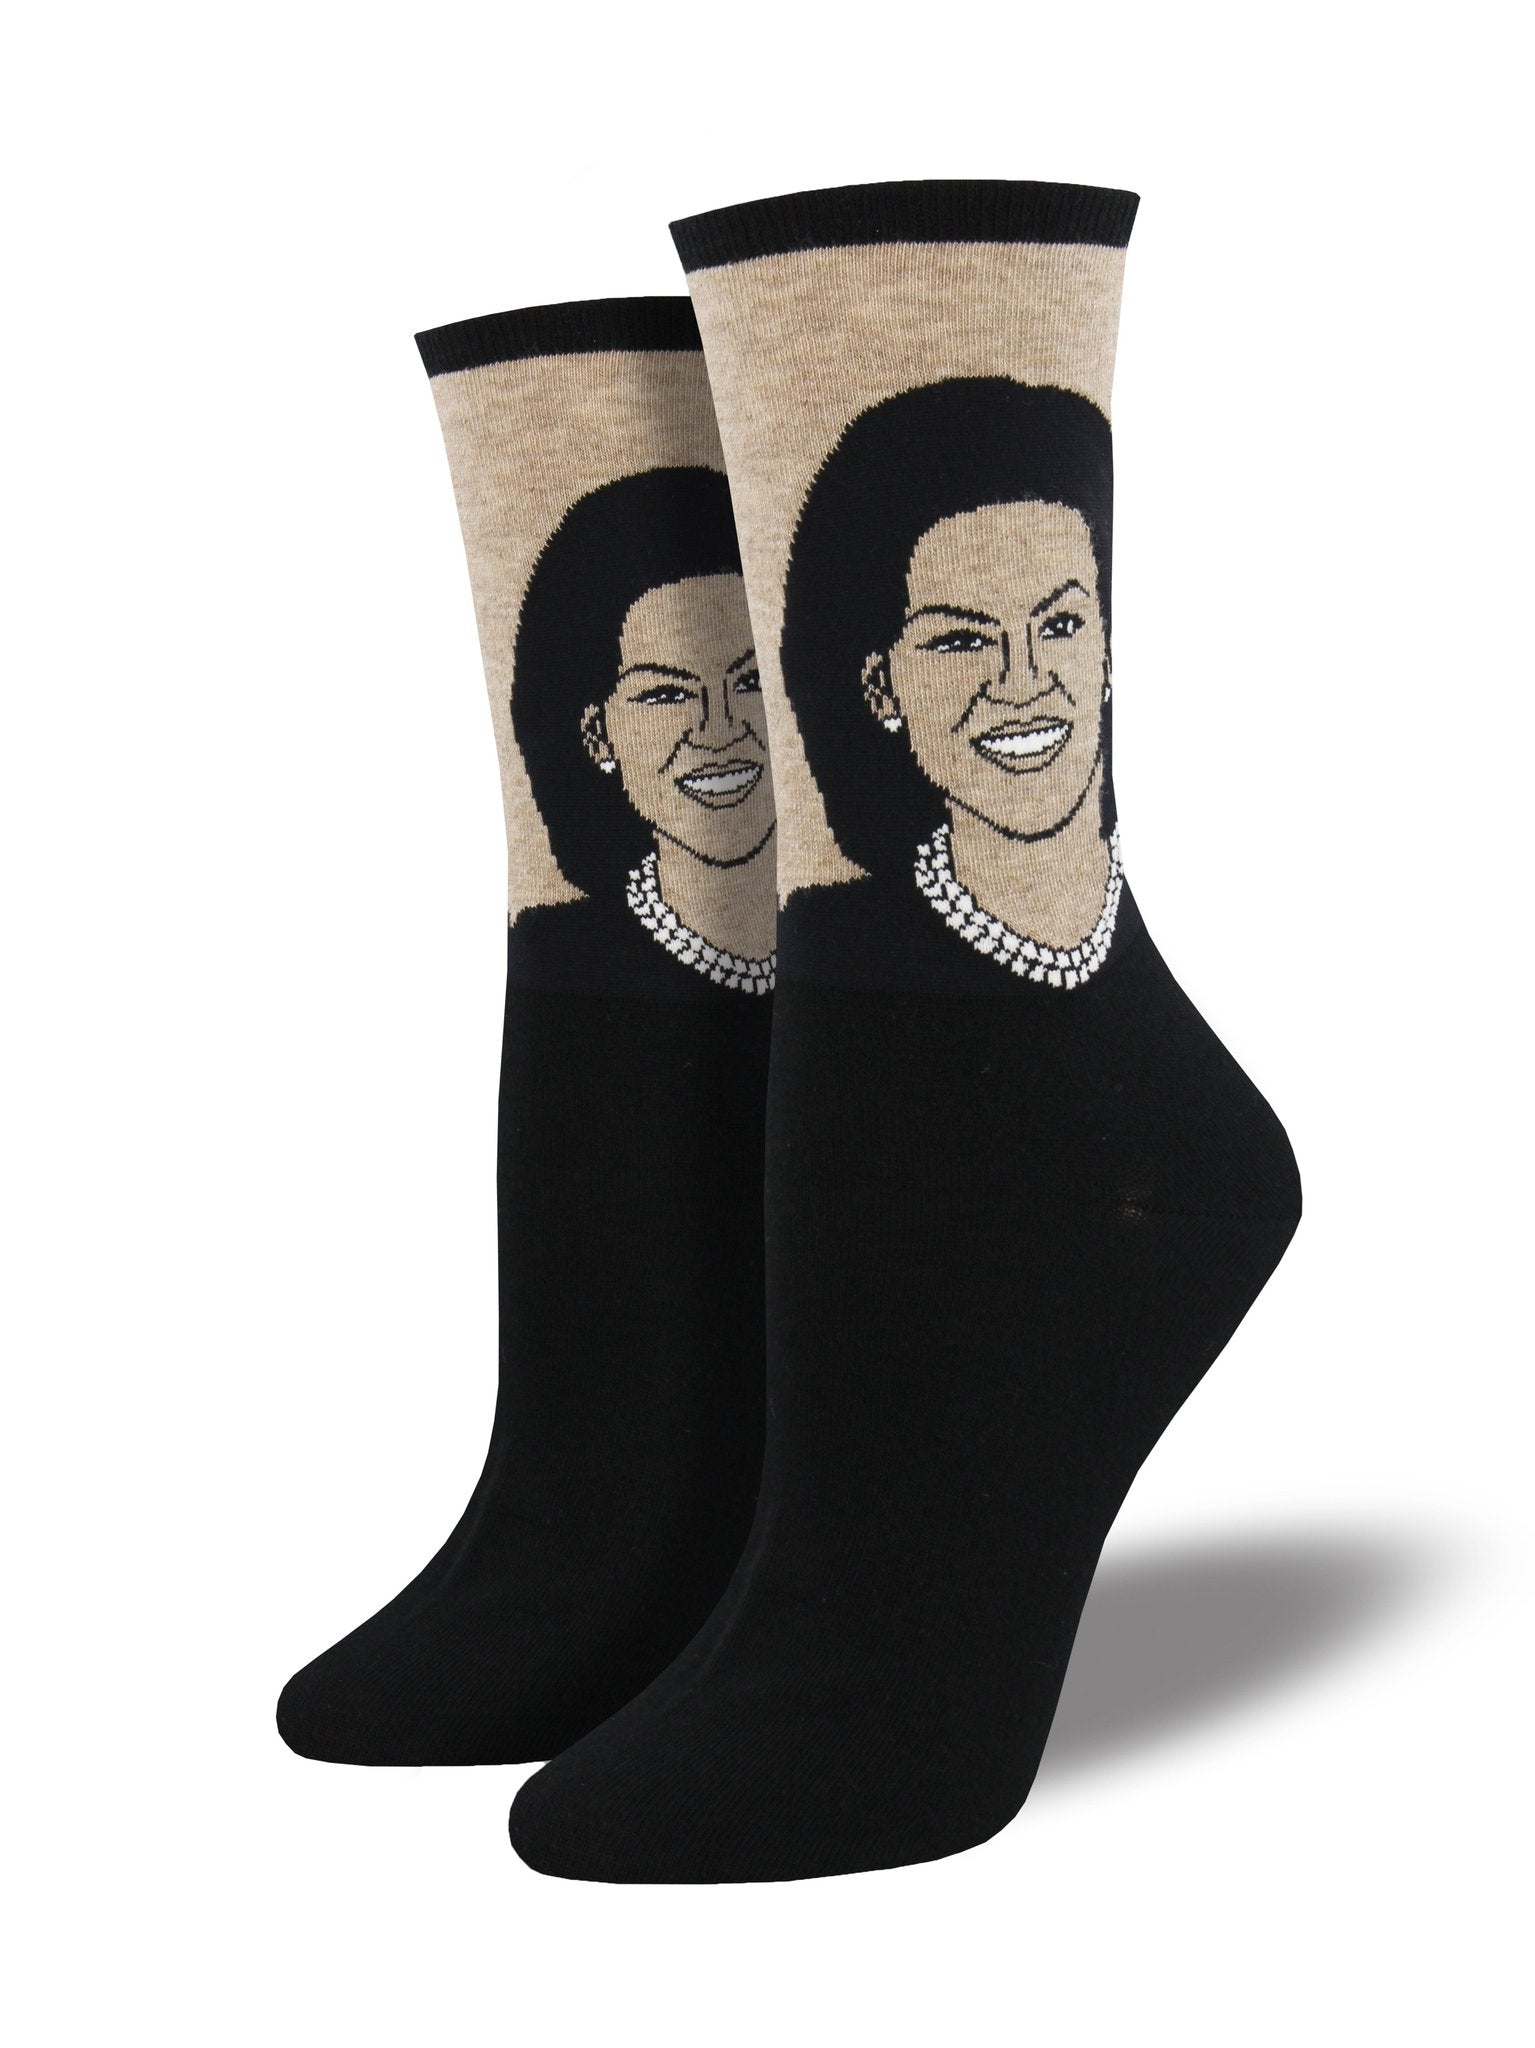 Socksmith's Michelle Obama in hemp heather, women's size 5 to 10.